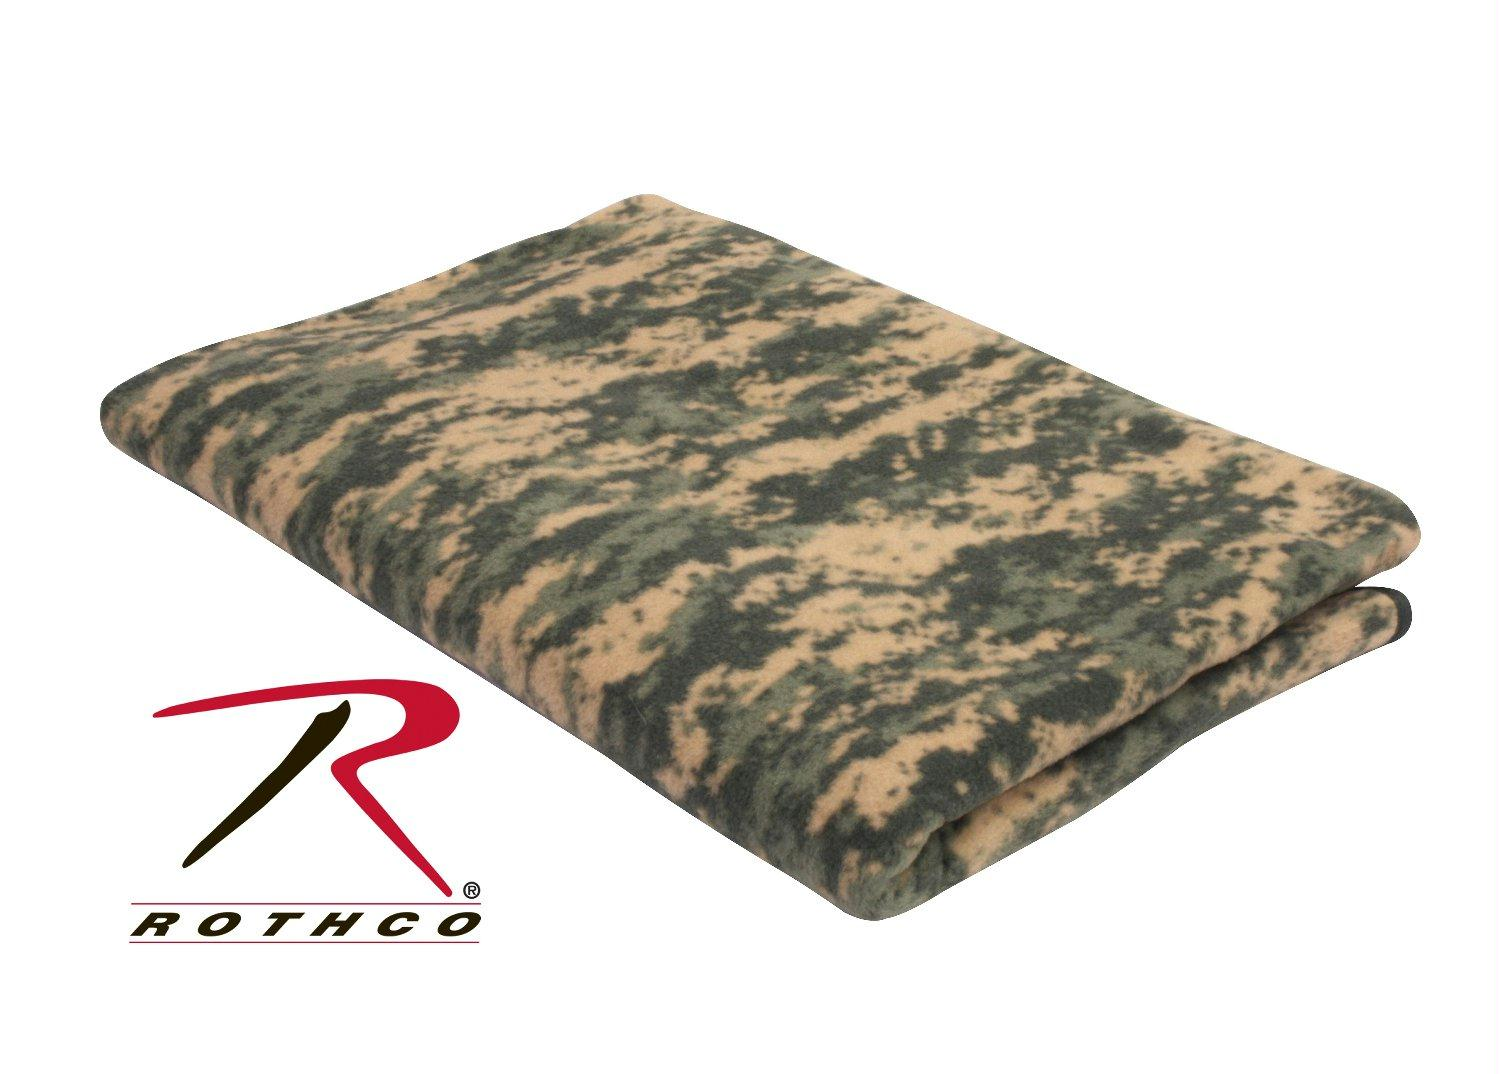 Rothco Camo Fleece Blanket - ACU Digital Camo